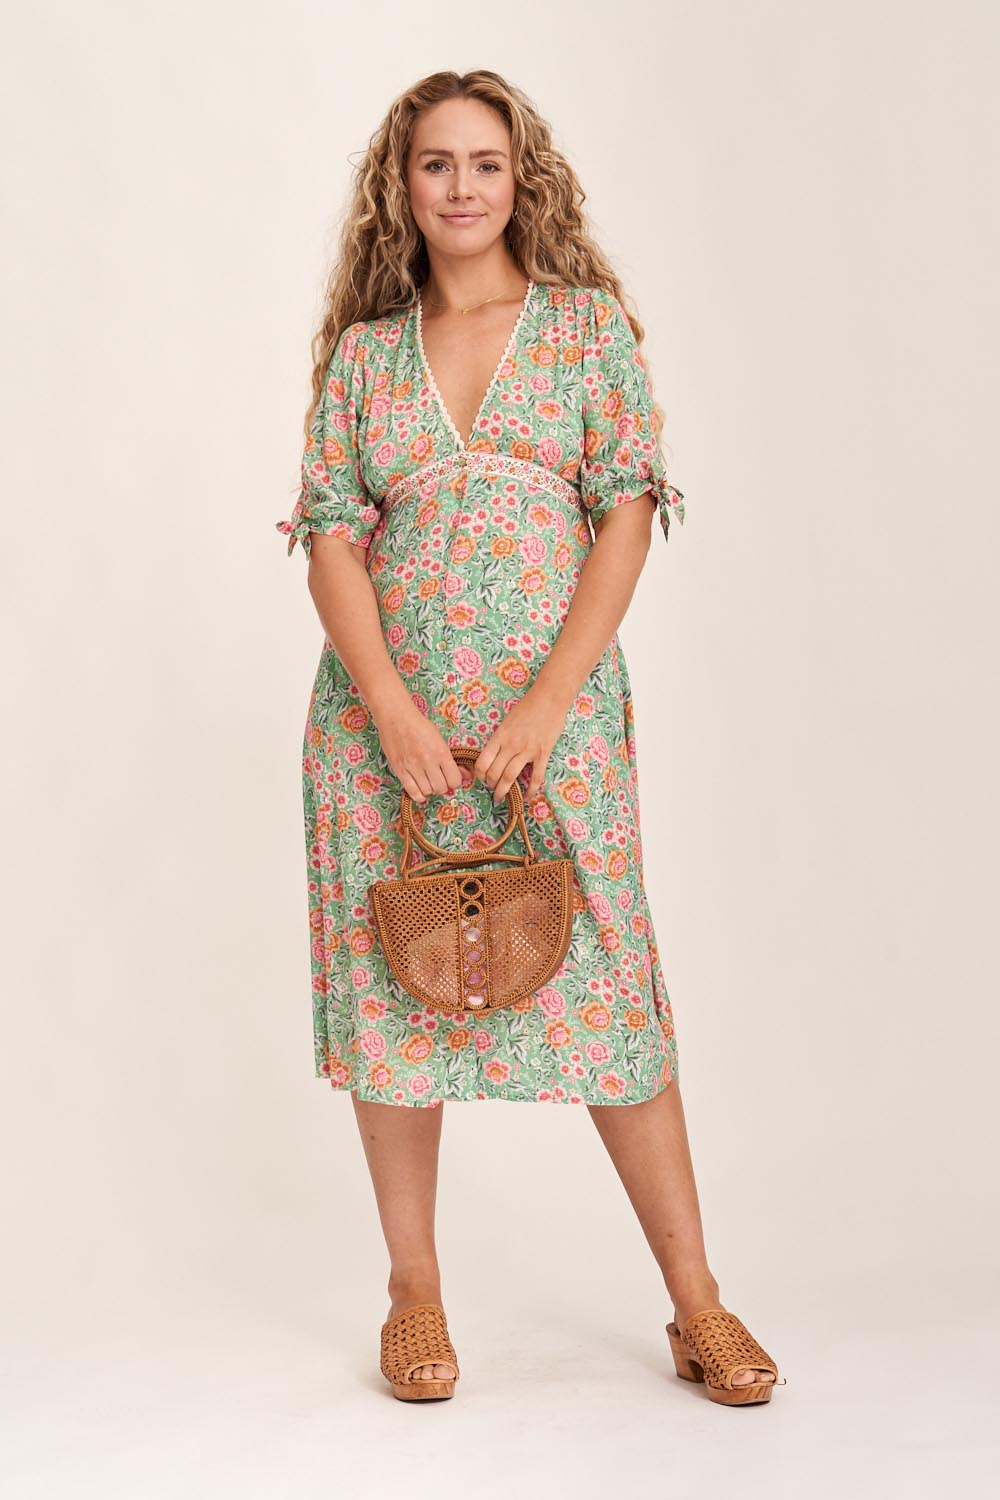 Harmony Teadress Mint